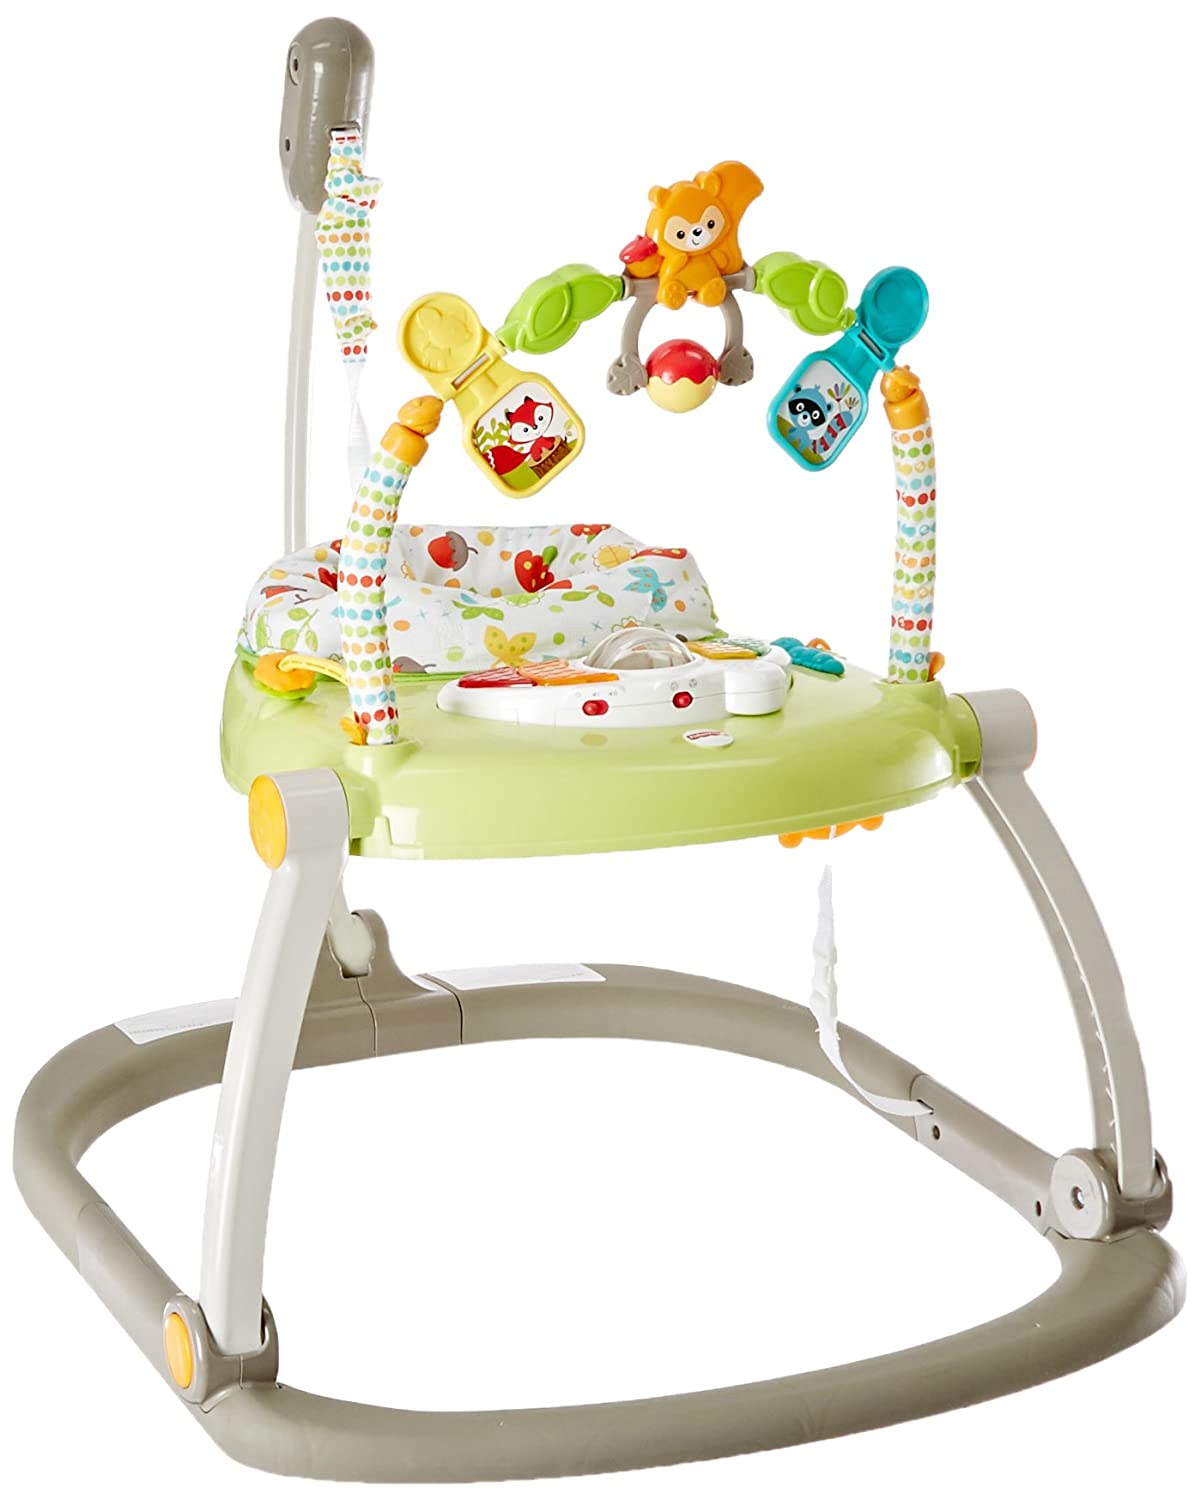 $49.97 (was $64.97) Fisher-Price Woodland Friends Space Saver Jumperoo